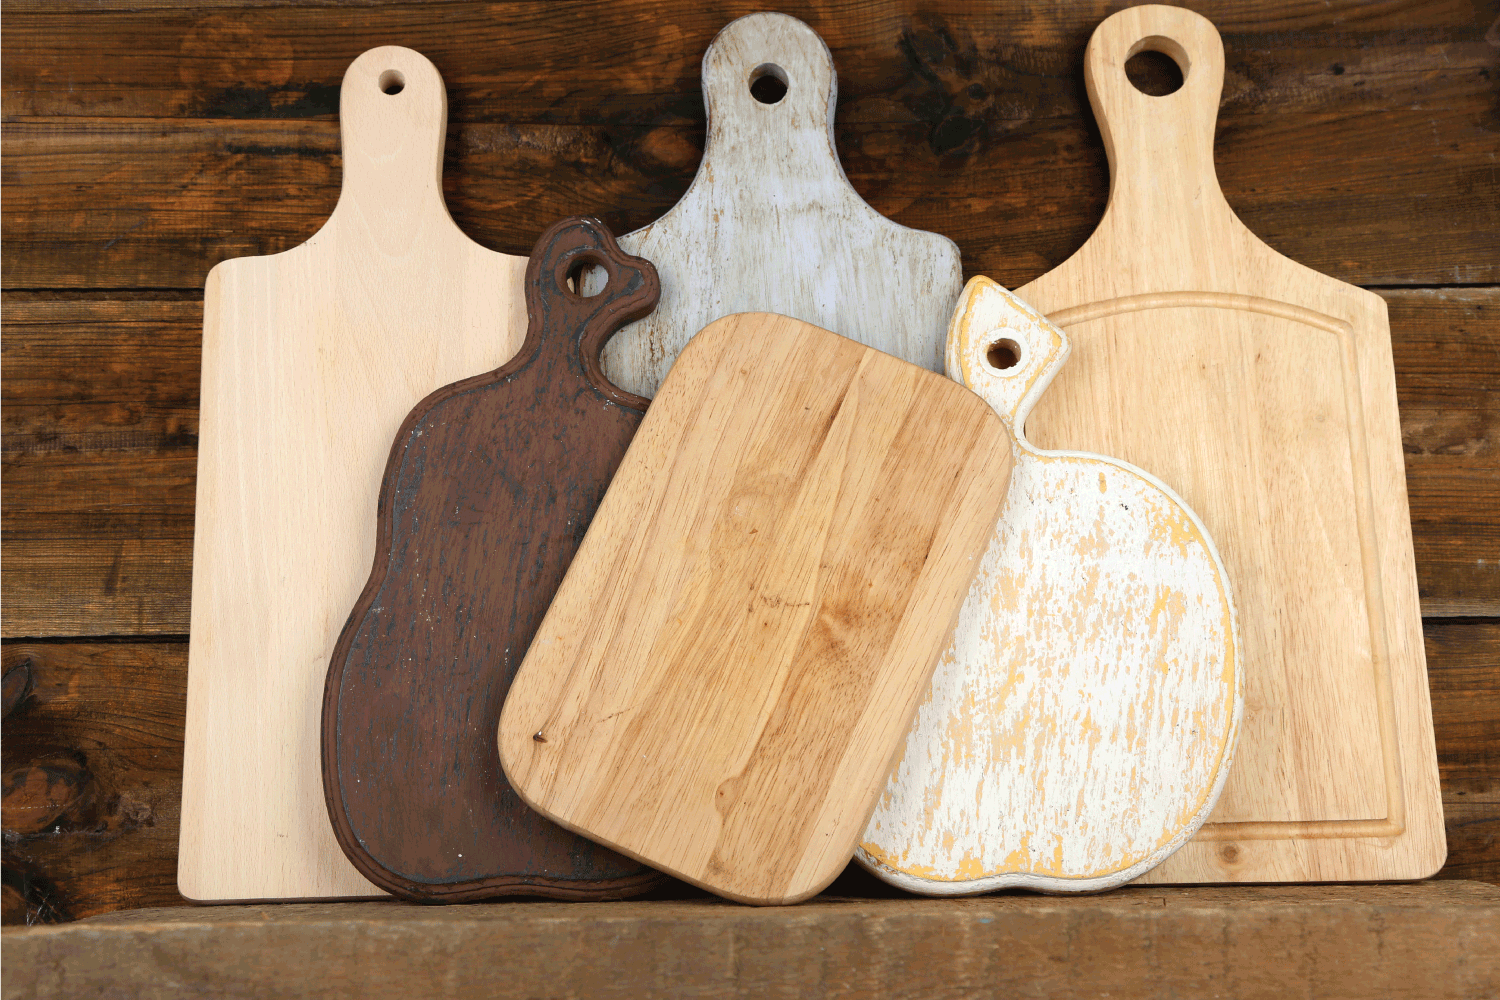 Empty cutting boards on wooden background. How Many Cutting Boards Do I Need